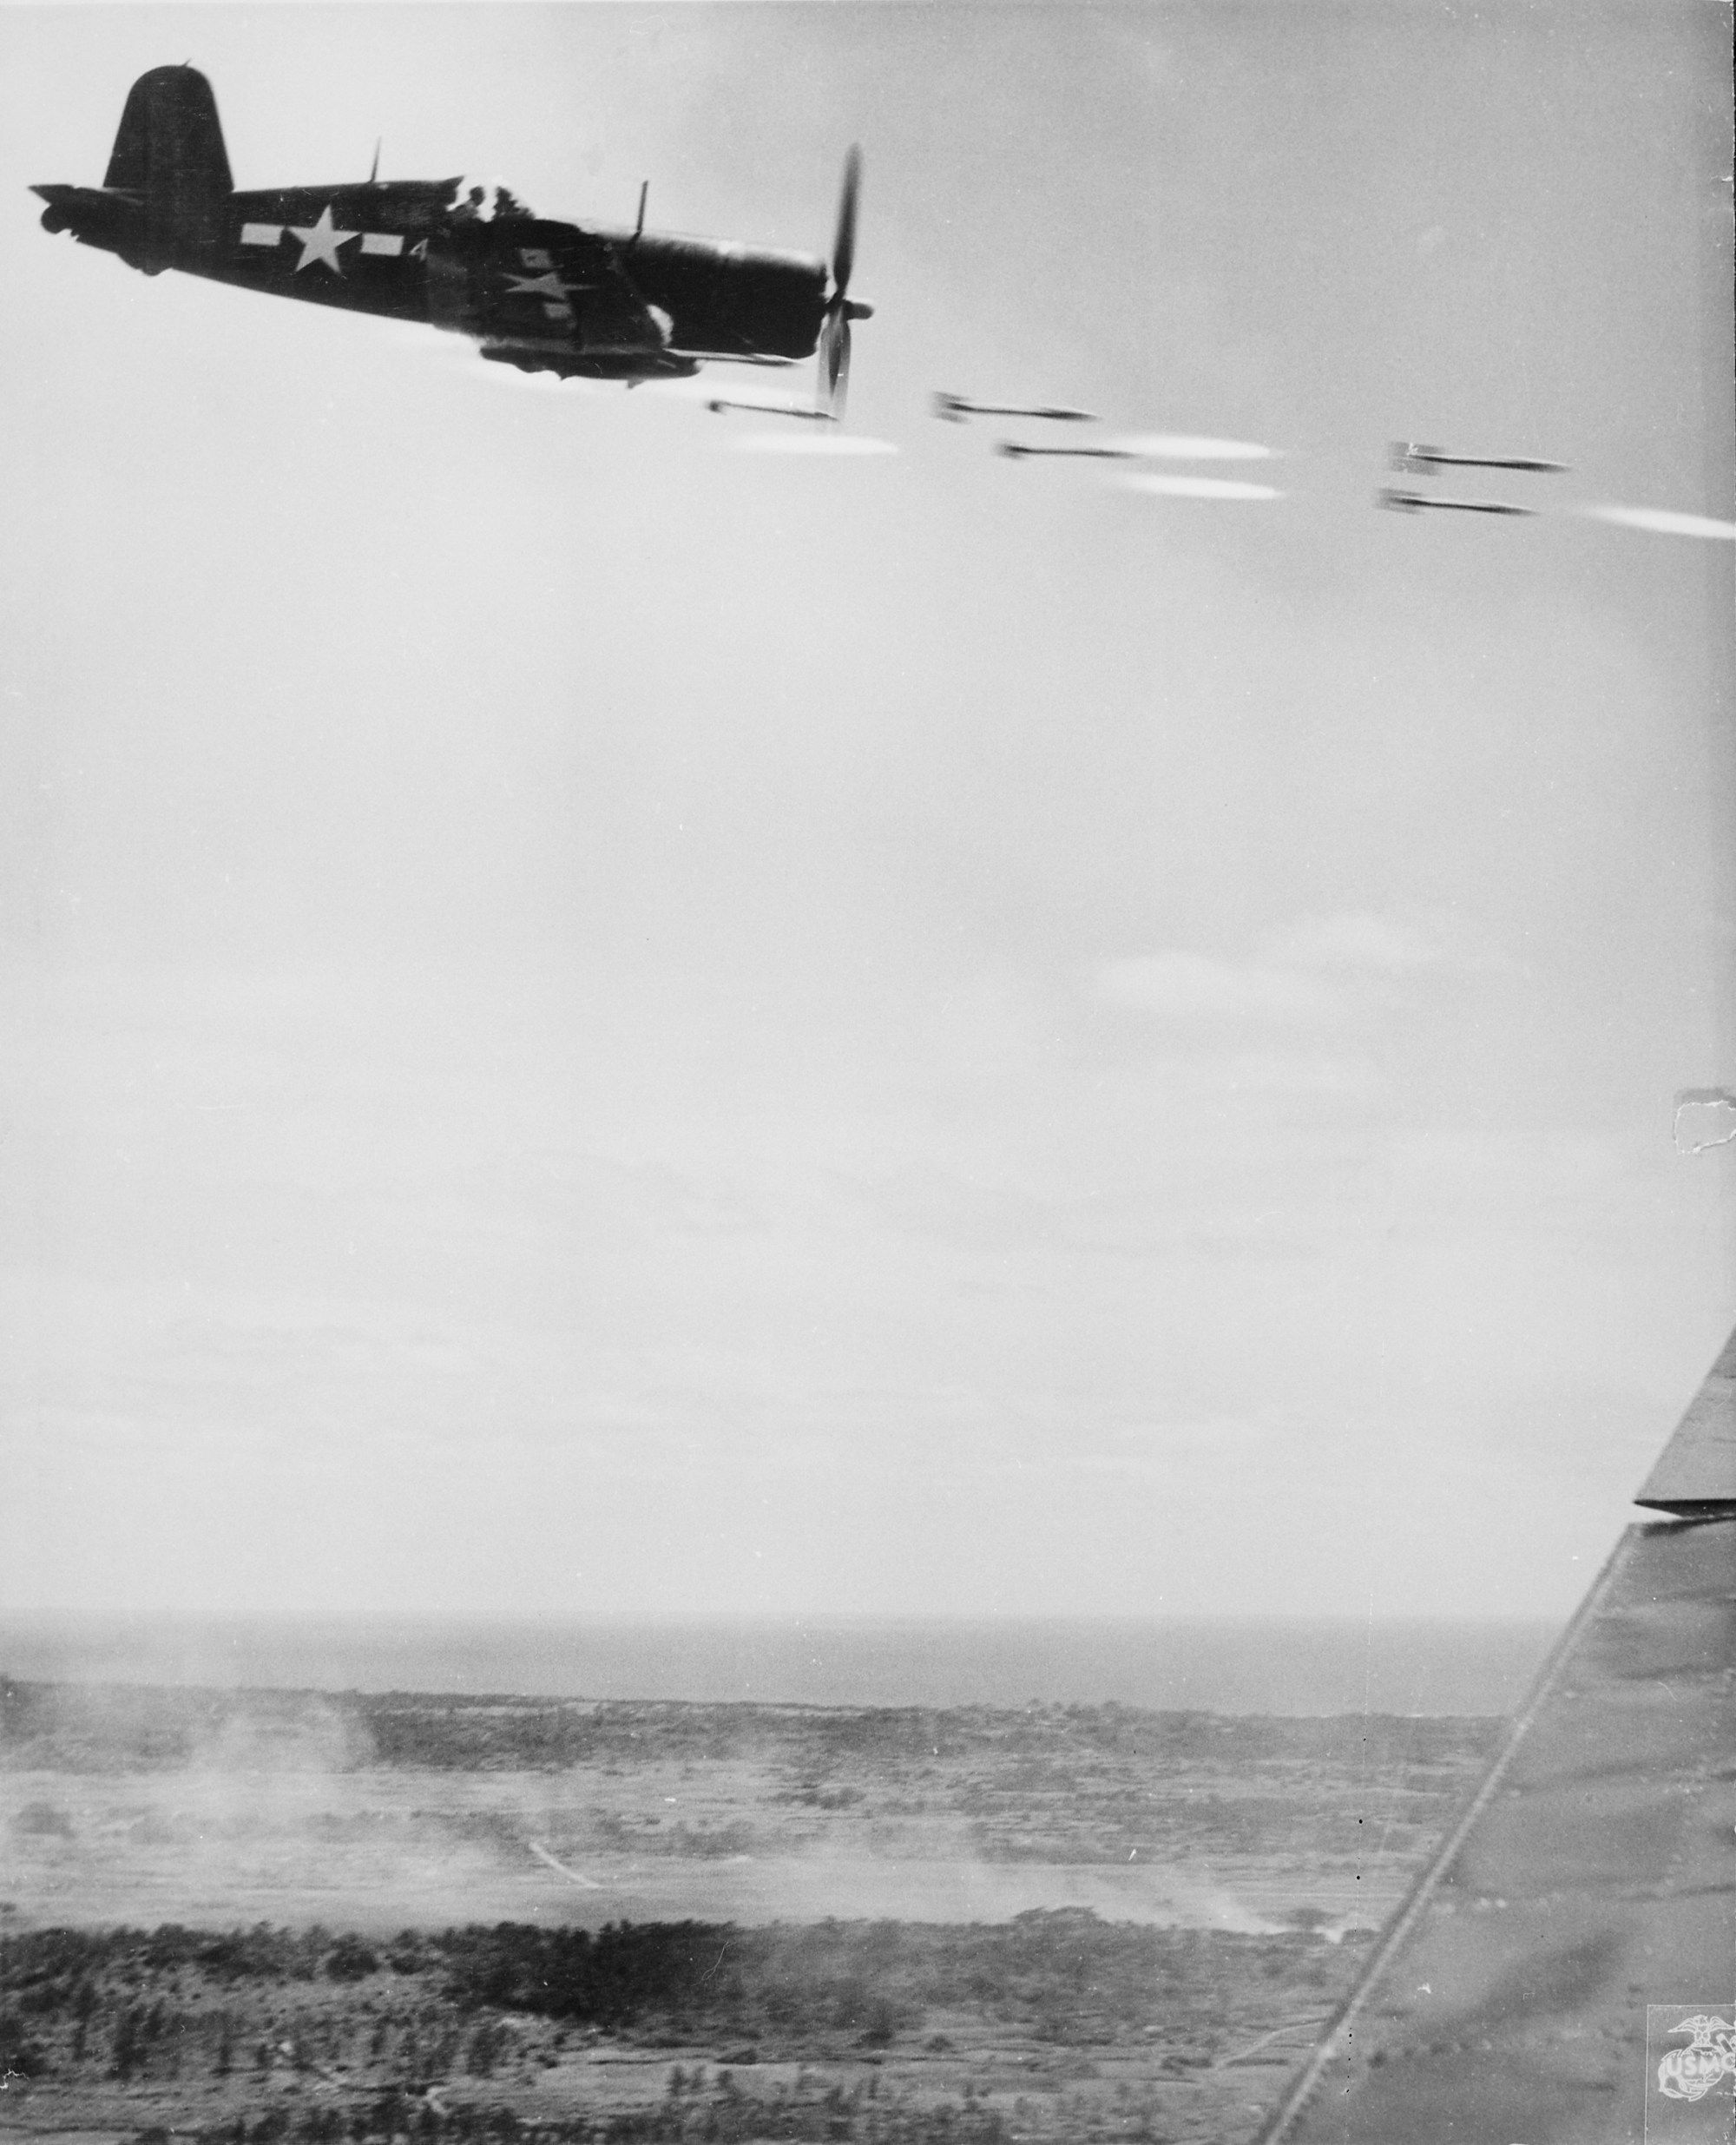 hight resolution of a corsair fires its rockets at a japanese stronghold on okinawa